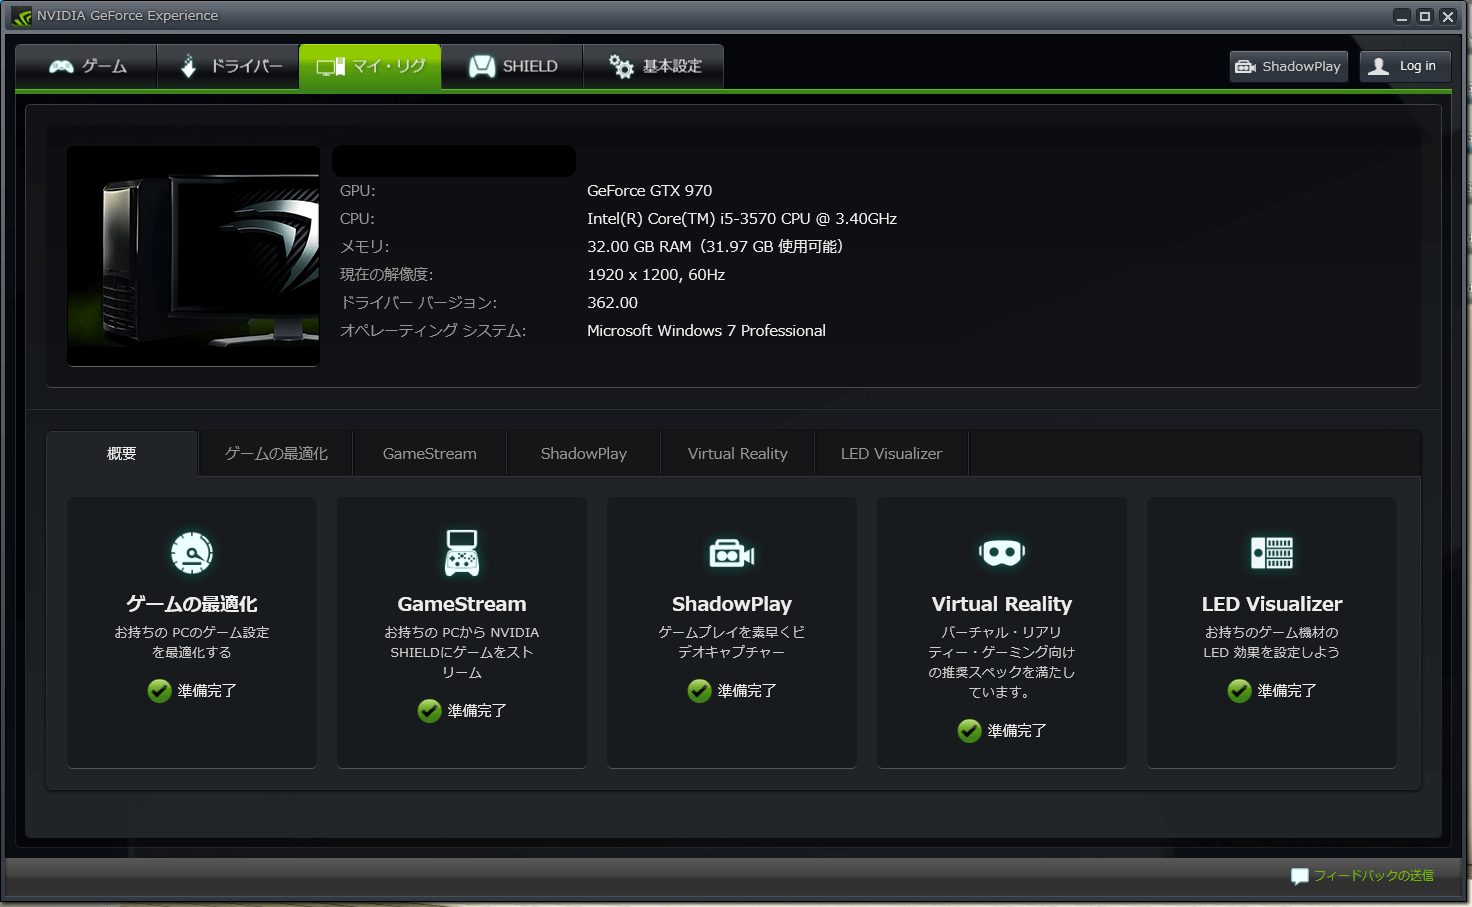 NVIDIA GeForce Experience 2.10.2.40